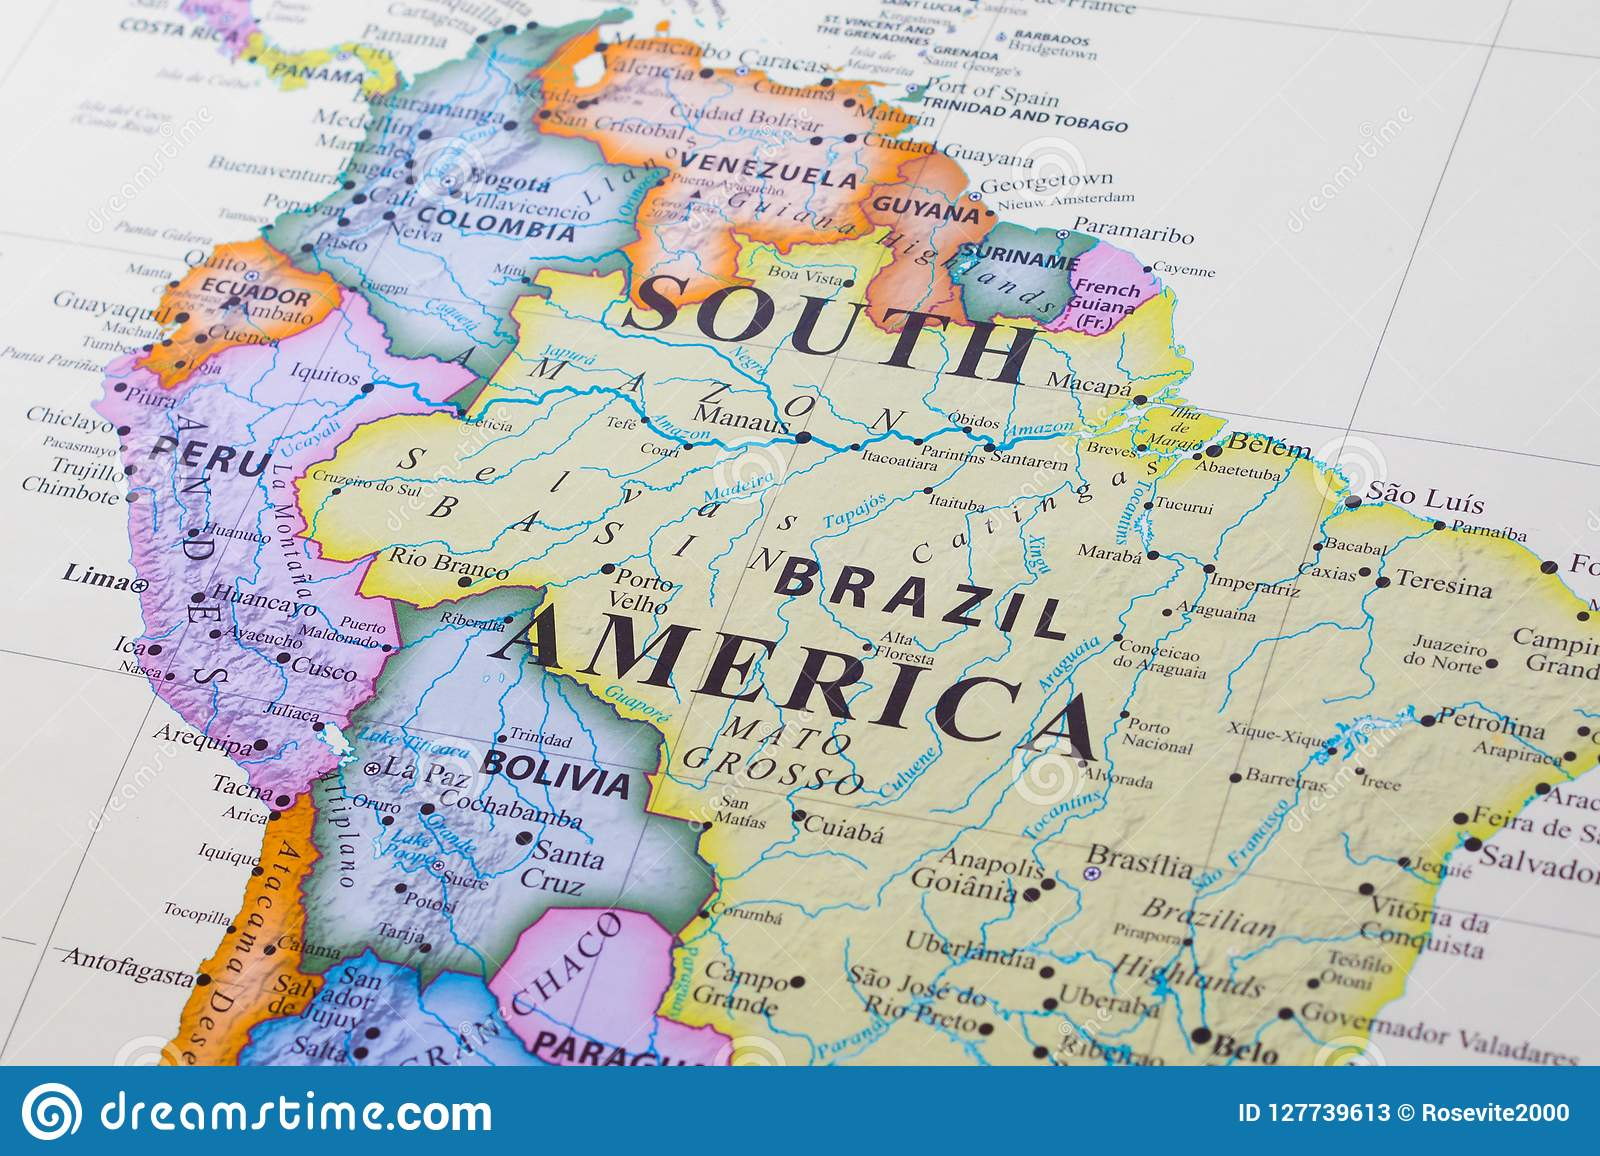 Map of South America stock image. Image of city, america ... Image Of Northern South America Map on major rivers in south america, map of northern ca wine country, map of northern east coast usa, map of north america natural resources, topography of northern south america, northern part of south america, map of north america without labels, map of latin america, map of northern lebanon, map of the northern america, political map of america, map of northern fiji, map of northern adriatic, map of northern ukraine, map of eastern north america, map of northern jordan, map of central america, map of northern south carolina, map of northern european rivers, map of northern wisconsin,